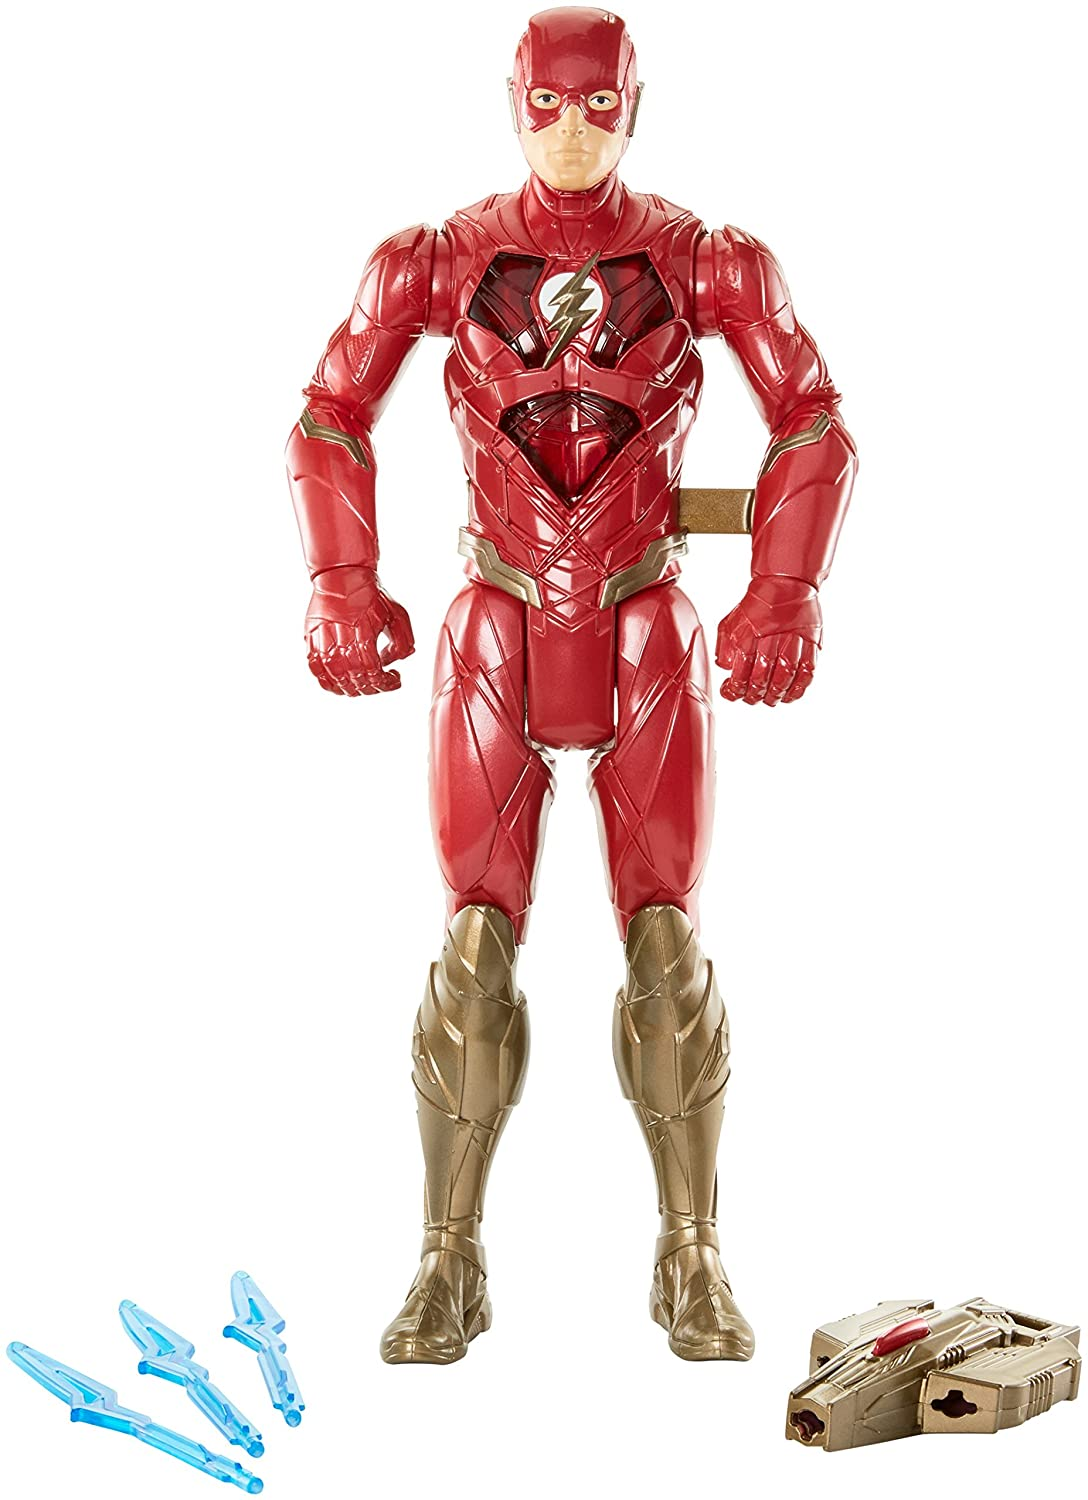 DC Justice League Lightning Sprint The Flash Figure 12 12 Mattel FNP68